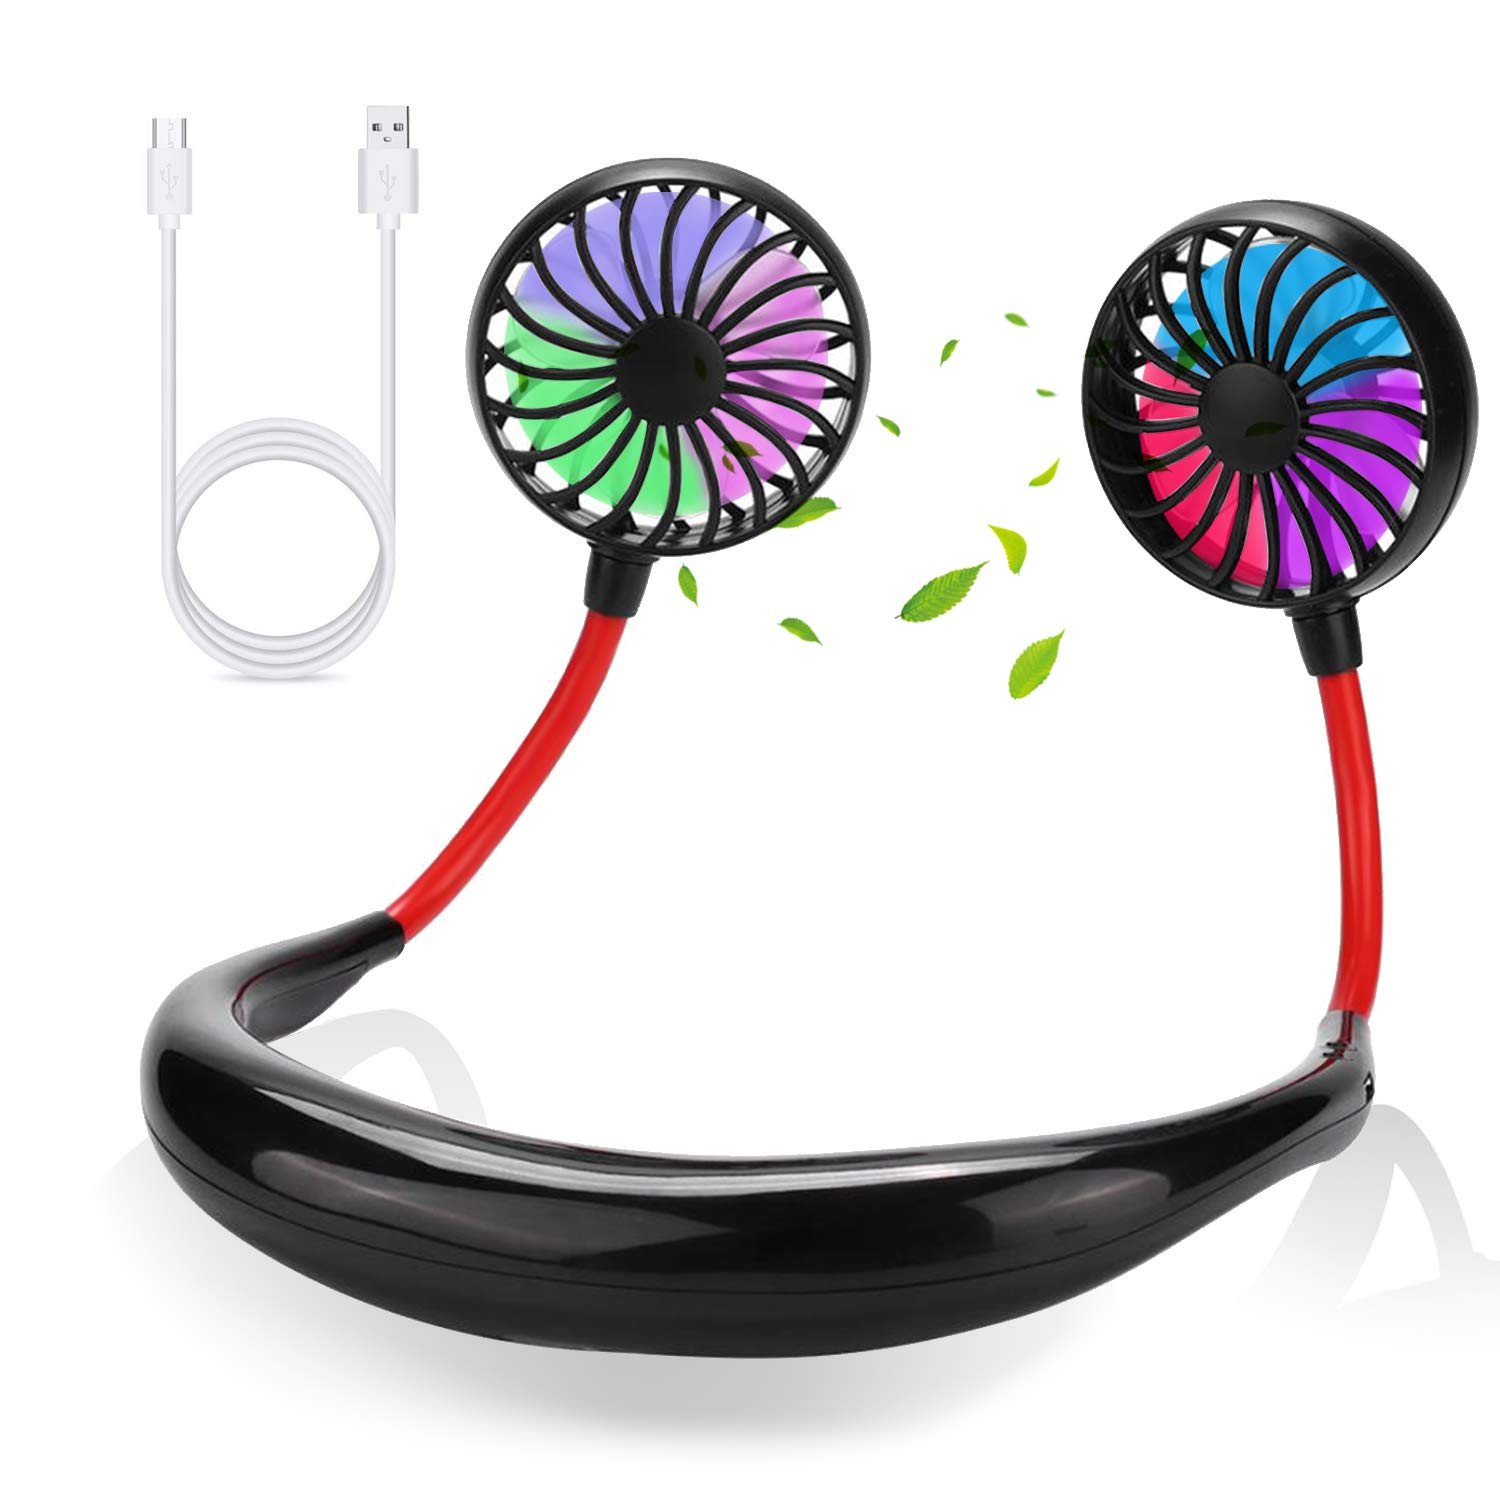 FIGROL Sports Hand Free Fan,Rechargeable Mini USB Fan with 2000mAh Battery,Headphone,Wearable,Neckband,Portable Fan with 360 Degree Adjustment Dual Wind Head for Running,Travel,Camping,Office by FIGROL